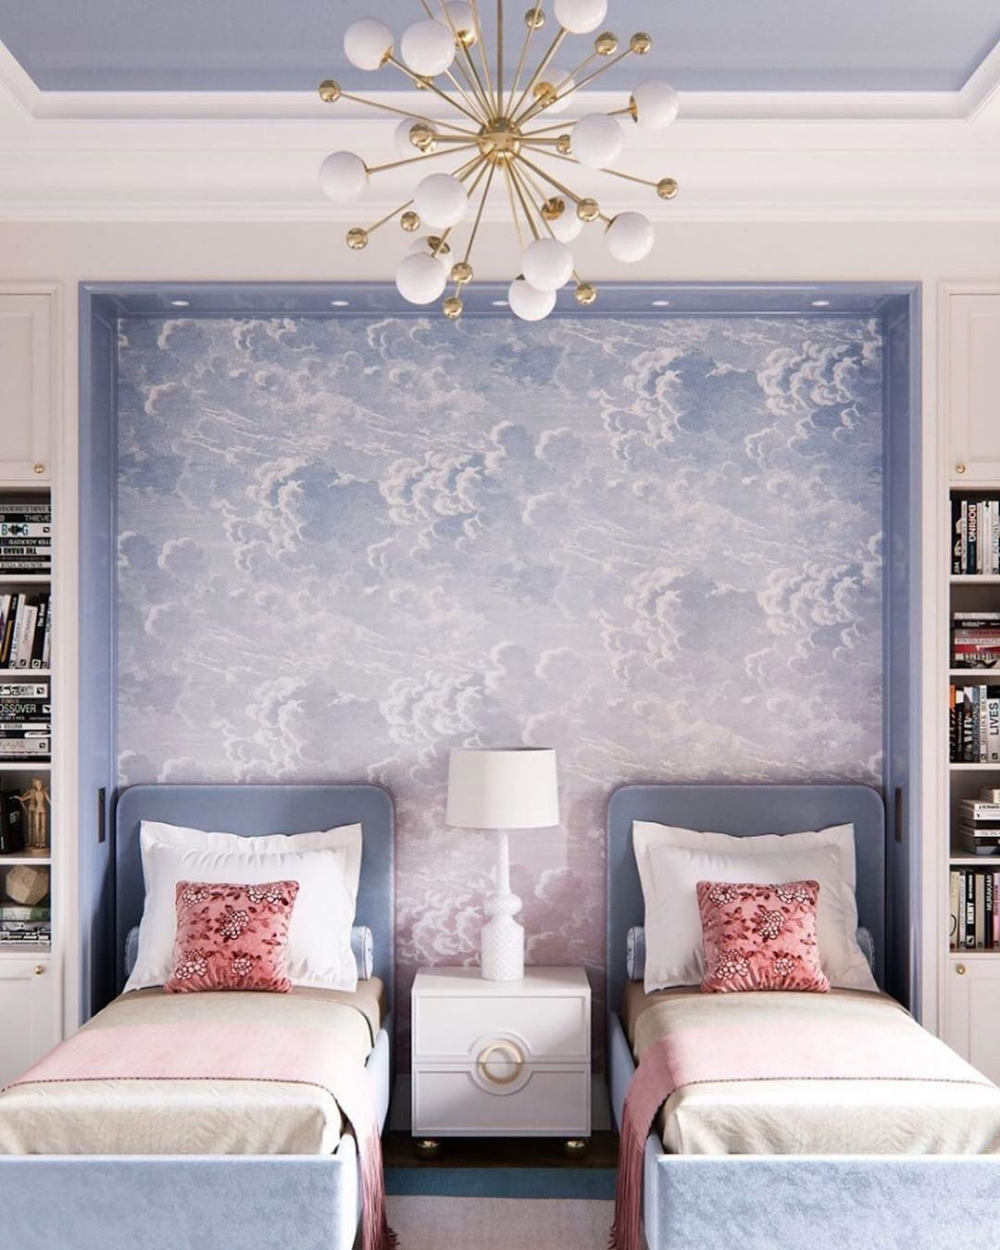 bedroom, white wall, white built in shelves, blue bed, blue accent wall, white ball chandelier